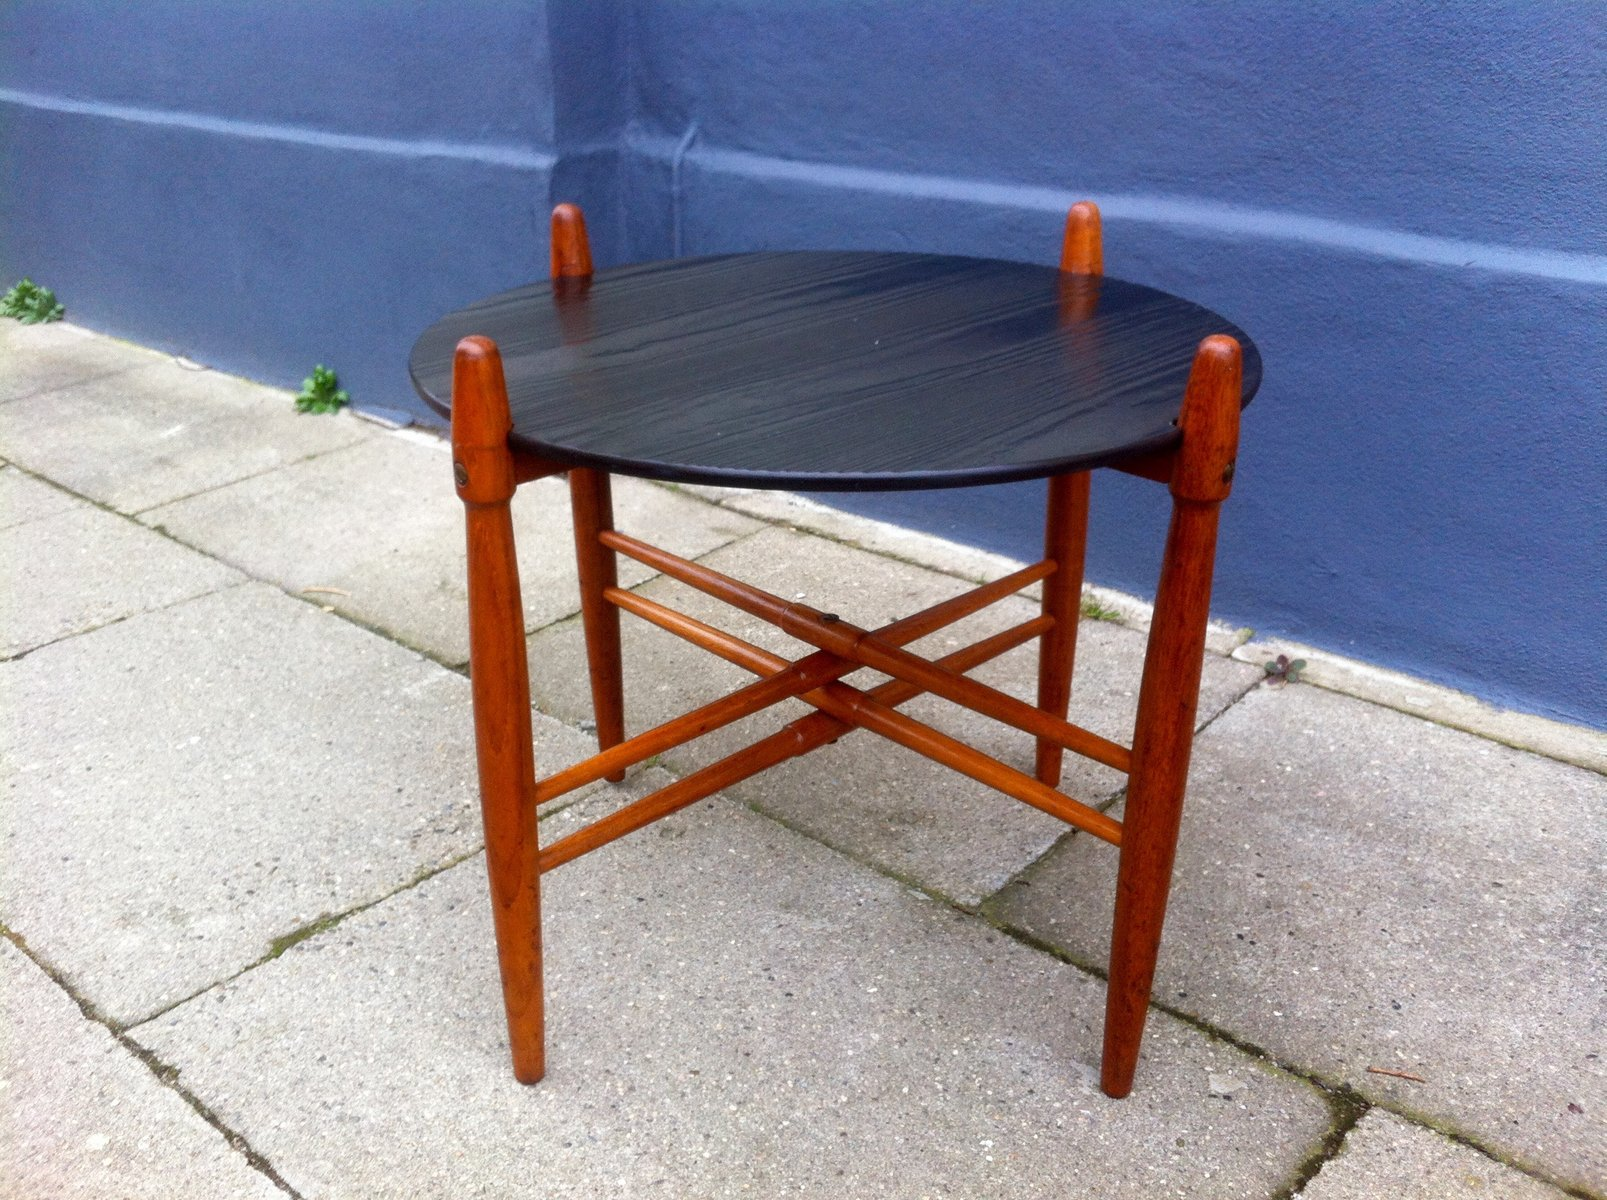 Mid Century Danish Teak U0026 Formica Side Table By Poul Hundevad For PJ  Furniture, 1960s For Sale At Pamono